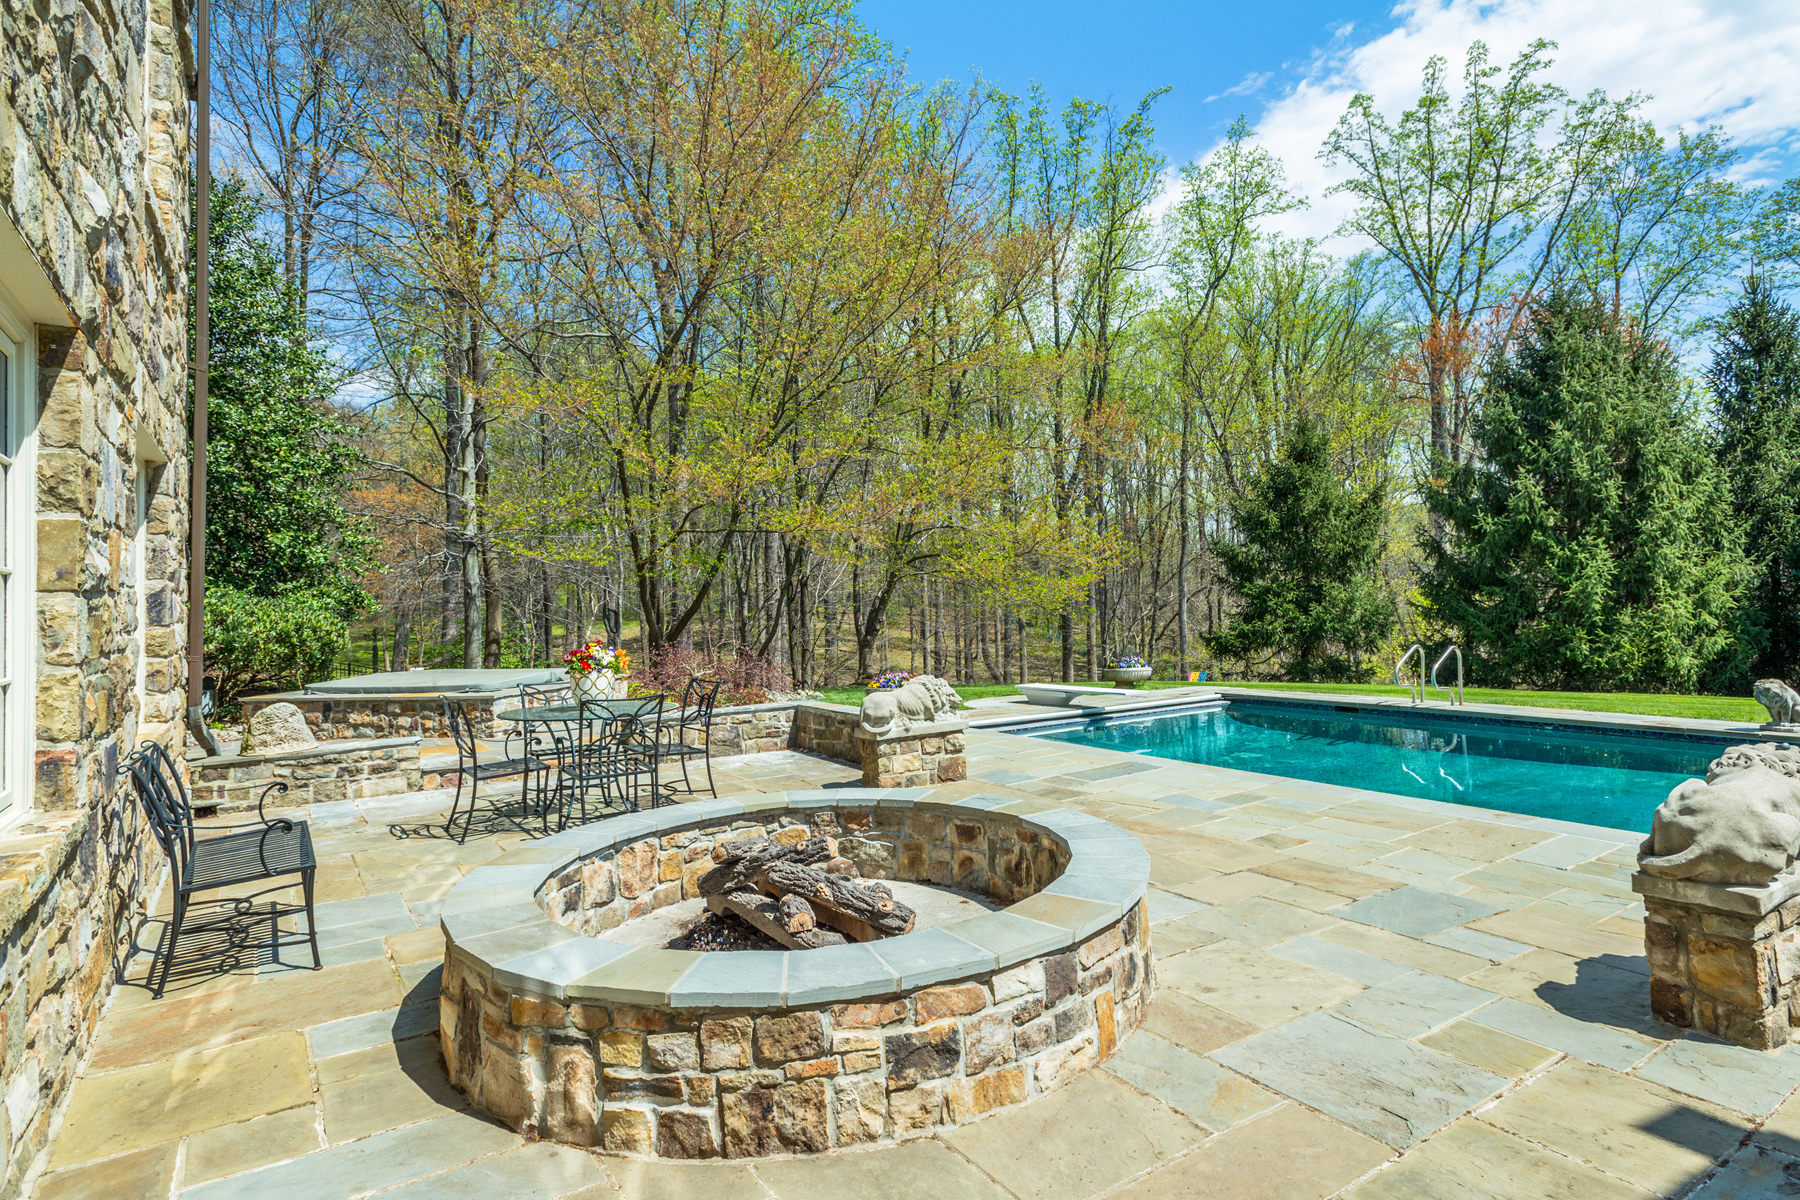 Additional photo for property listing at 8610 Country Club Drive, Bethesda  Bethesda, Μεριλαντ 20817 Ηνωμενεσ Πολιτειεσ